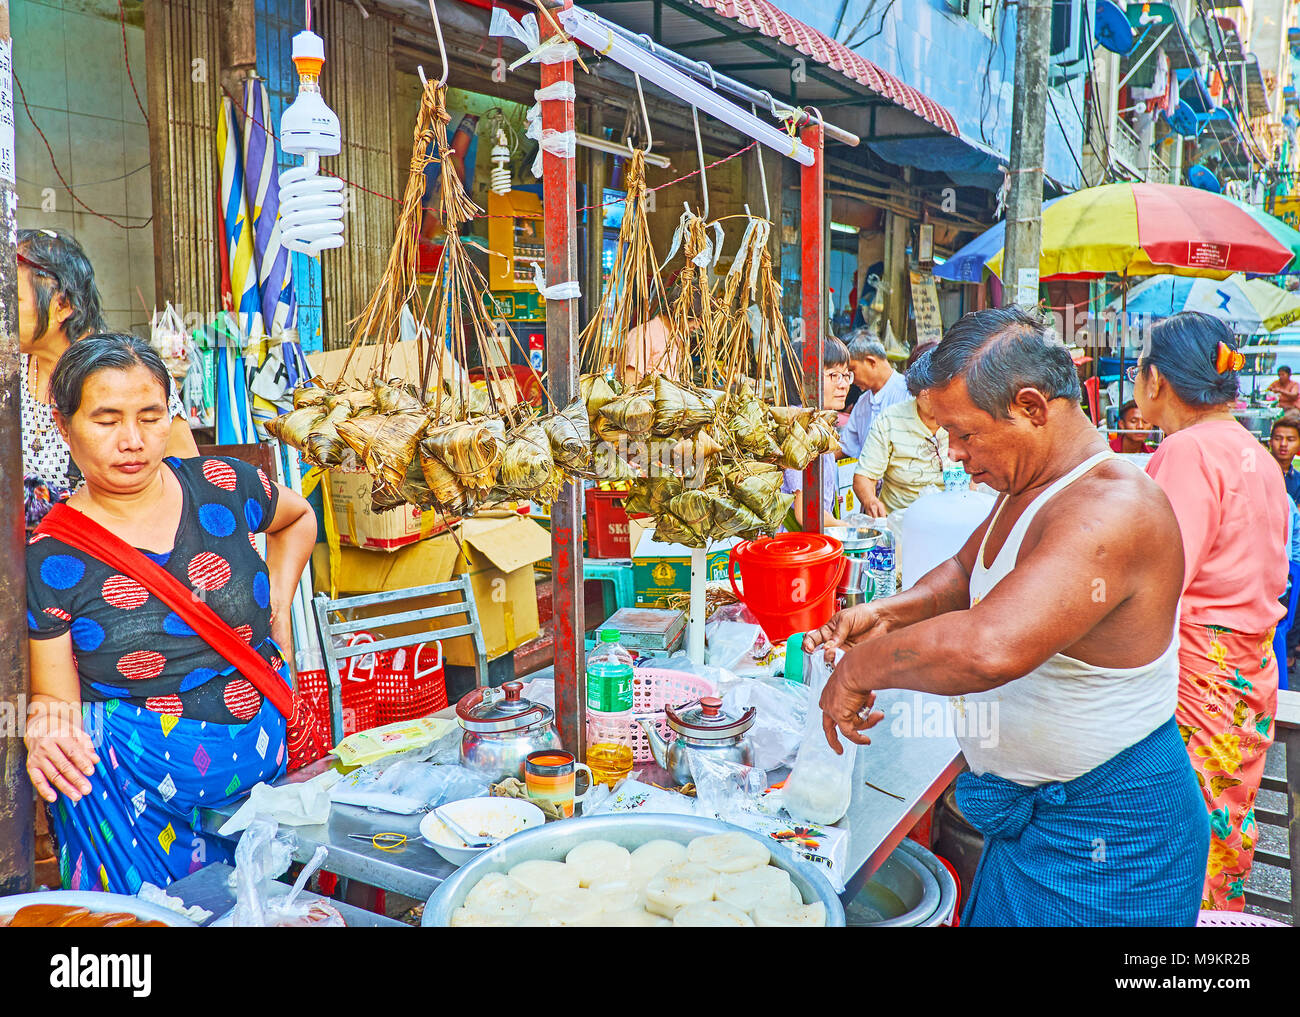 YANGON, MYANMAR - FEBRUARY 14, 2018: The market stall in Chinatown with dishes of local cuisine - banana leaf-wrapped food, dumplings and others, on F - Stock Image